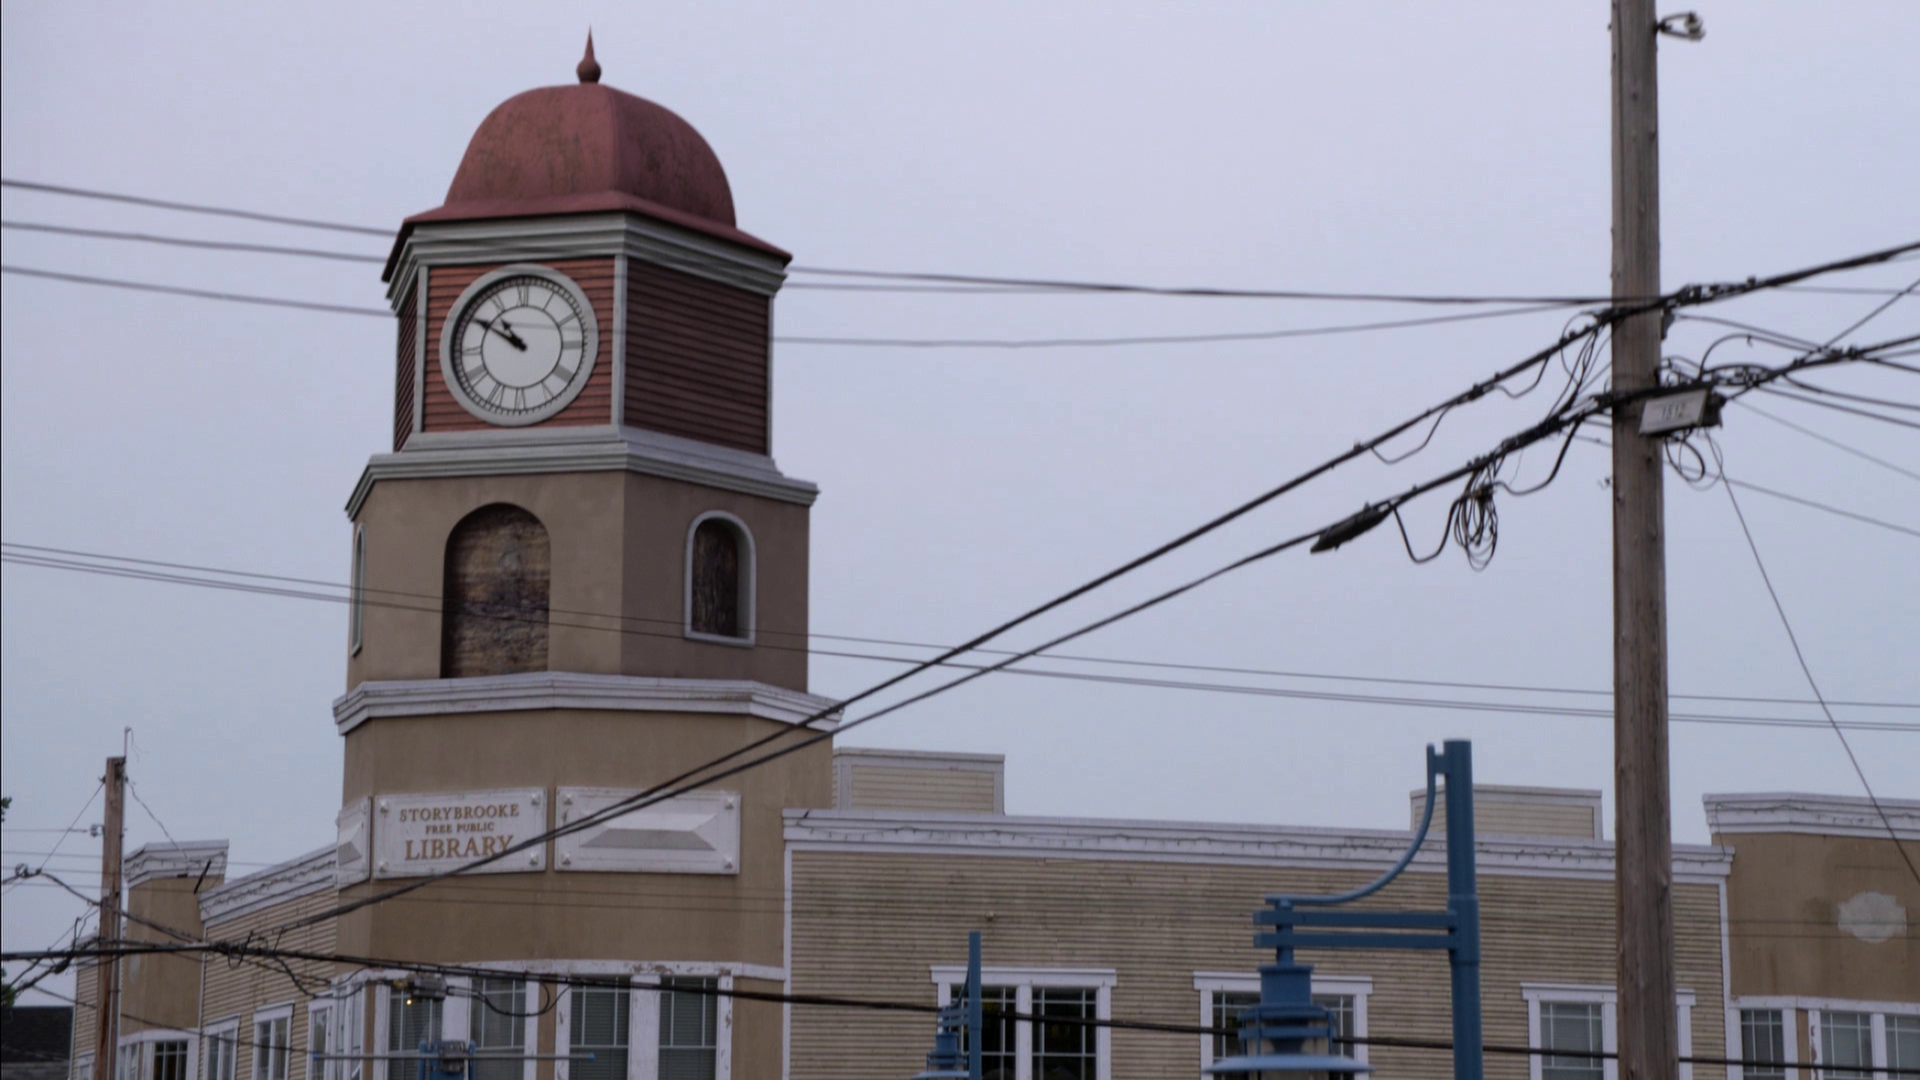 Storybrooke Free Public Library Once Upon A Time Wiki Fandom